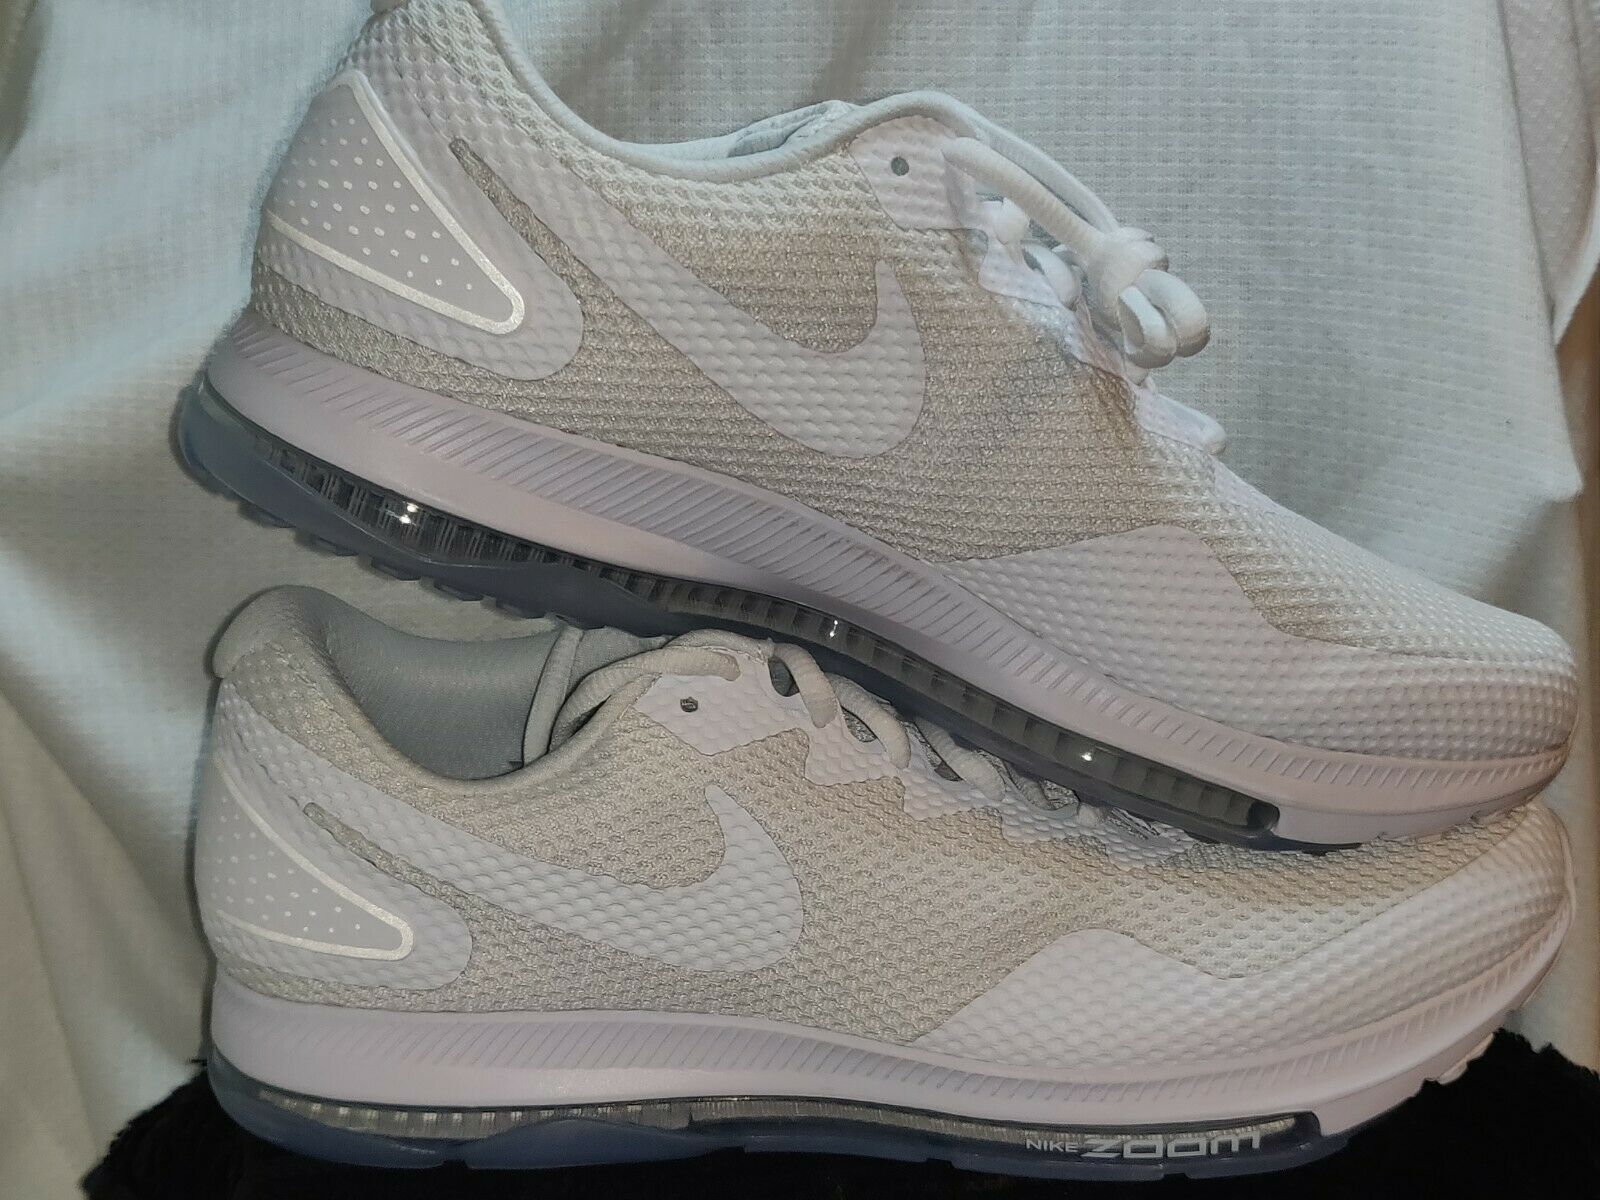 NEW Nike Zoom All Out Out Out Low 2 Running Men's Size 10 White AJ0035-100 a99df8